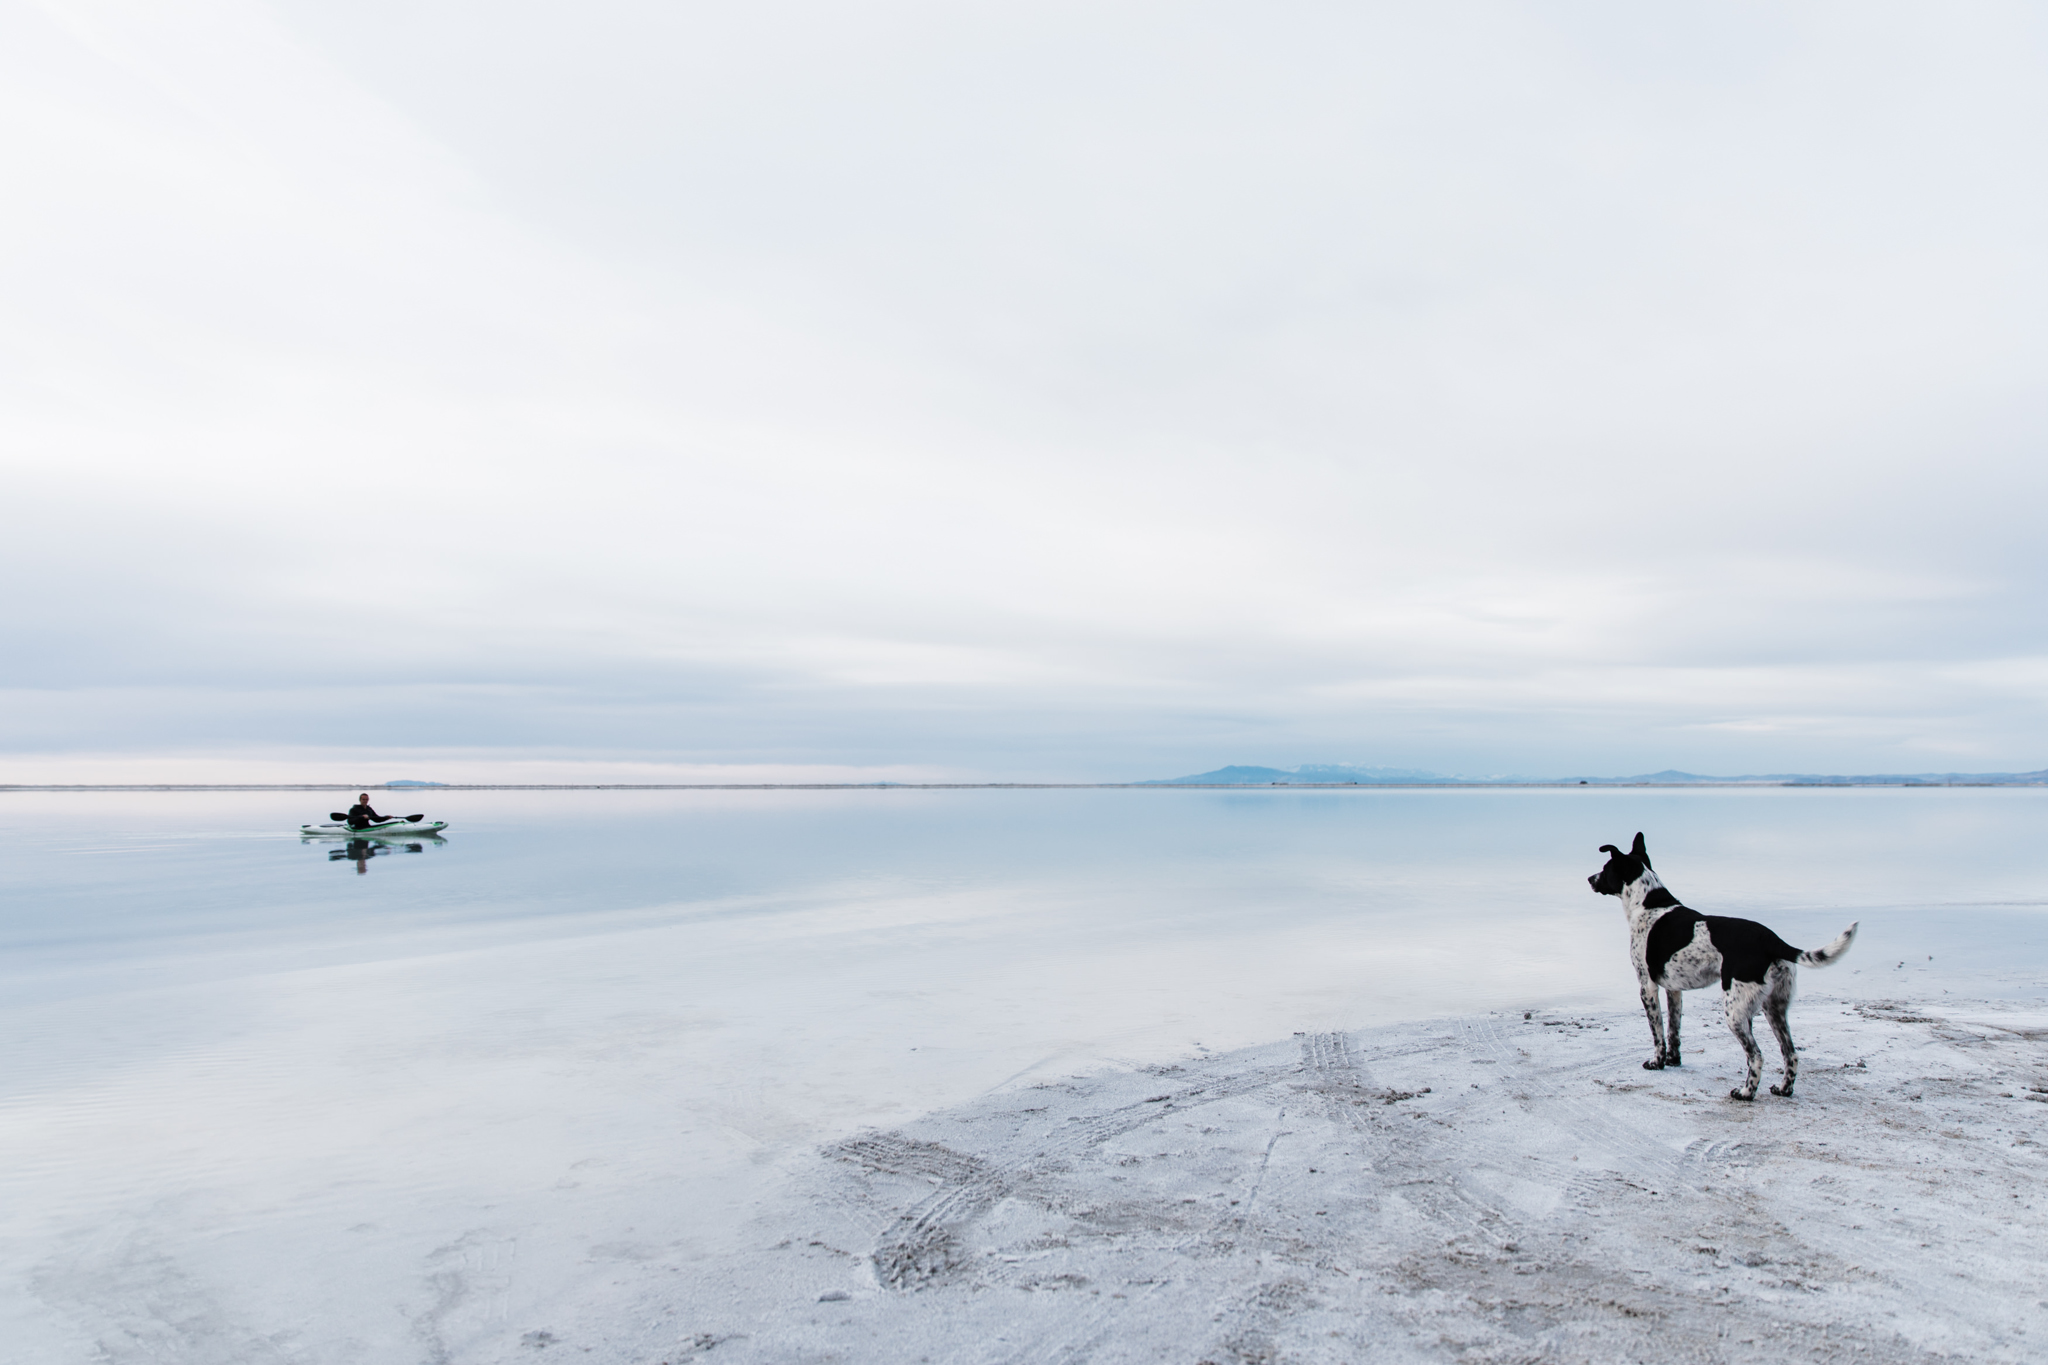 kayaking on the salt flats in utah | utah and california adventure elopement photographers | the hearnes adventure photography | www.thehearnes.com